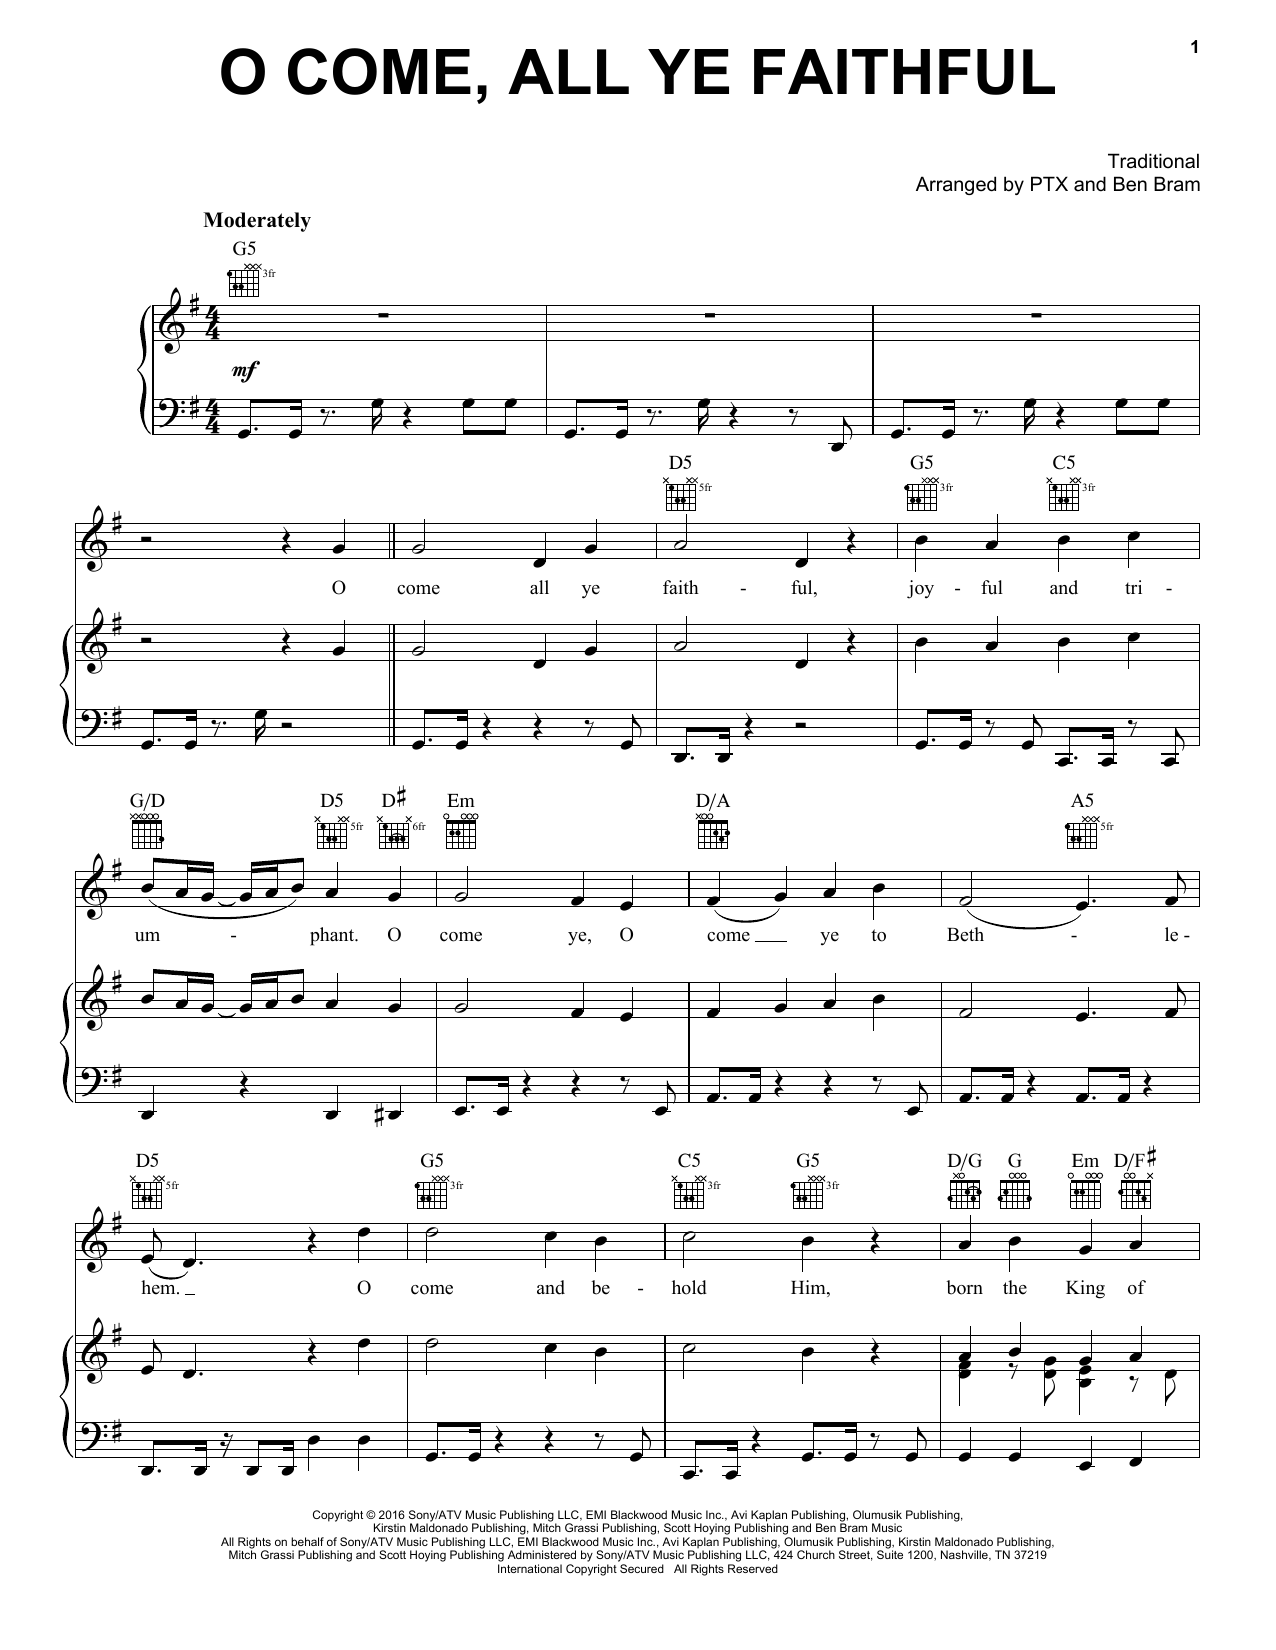 Pentatonix O Come, All Ye Faithful sheet music notes and chords. Download Printable PDF.